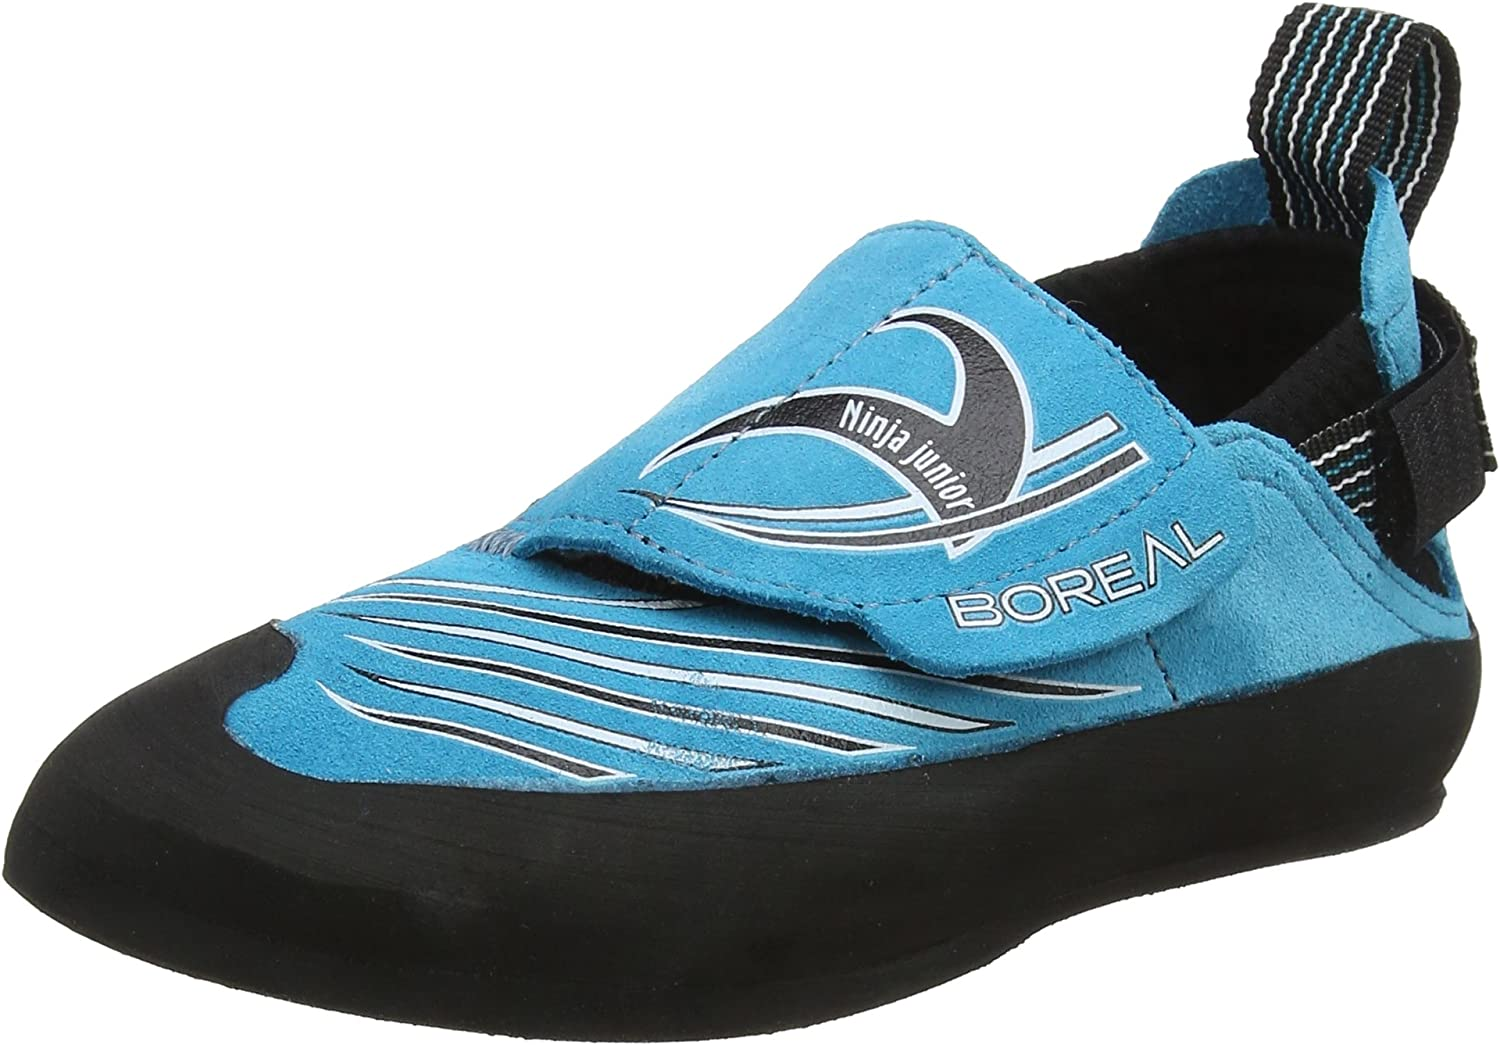 Amazon.com: Boreal Ninja Jr. Climbing Shoe - Kids: Sports ...